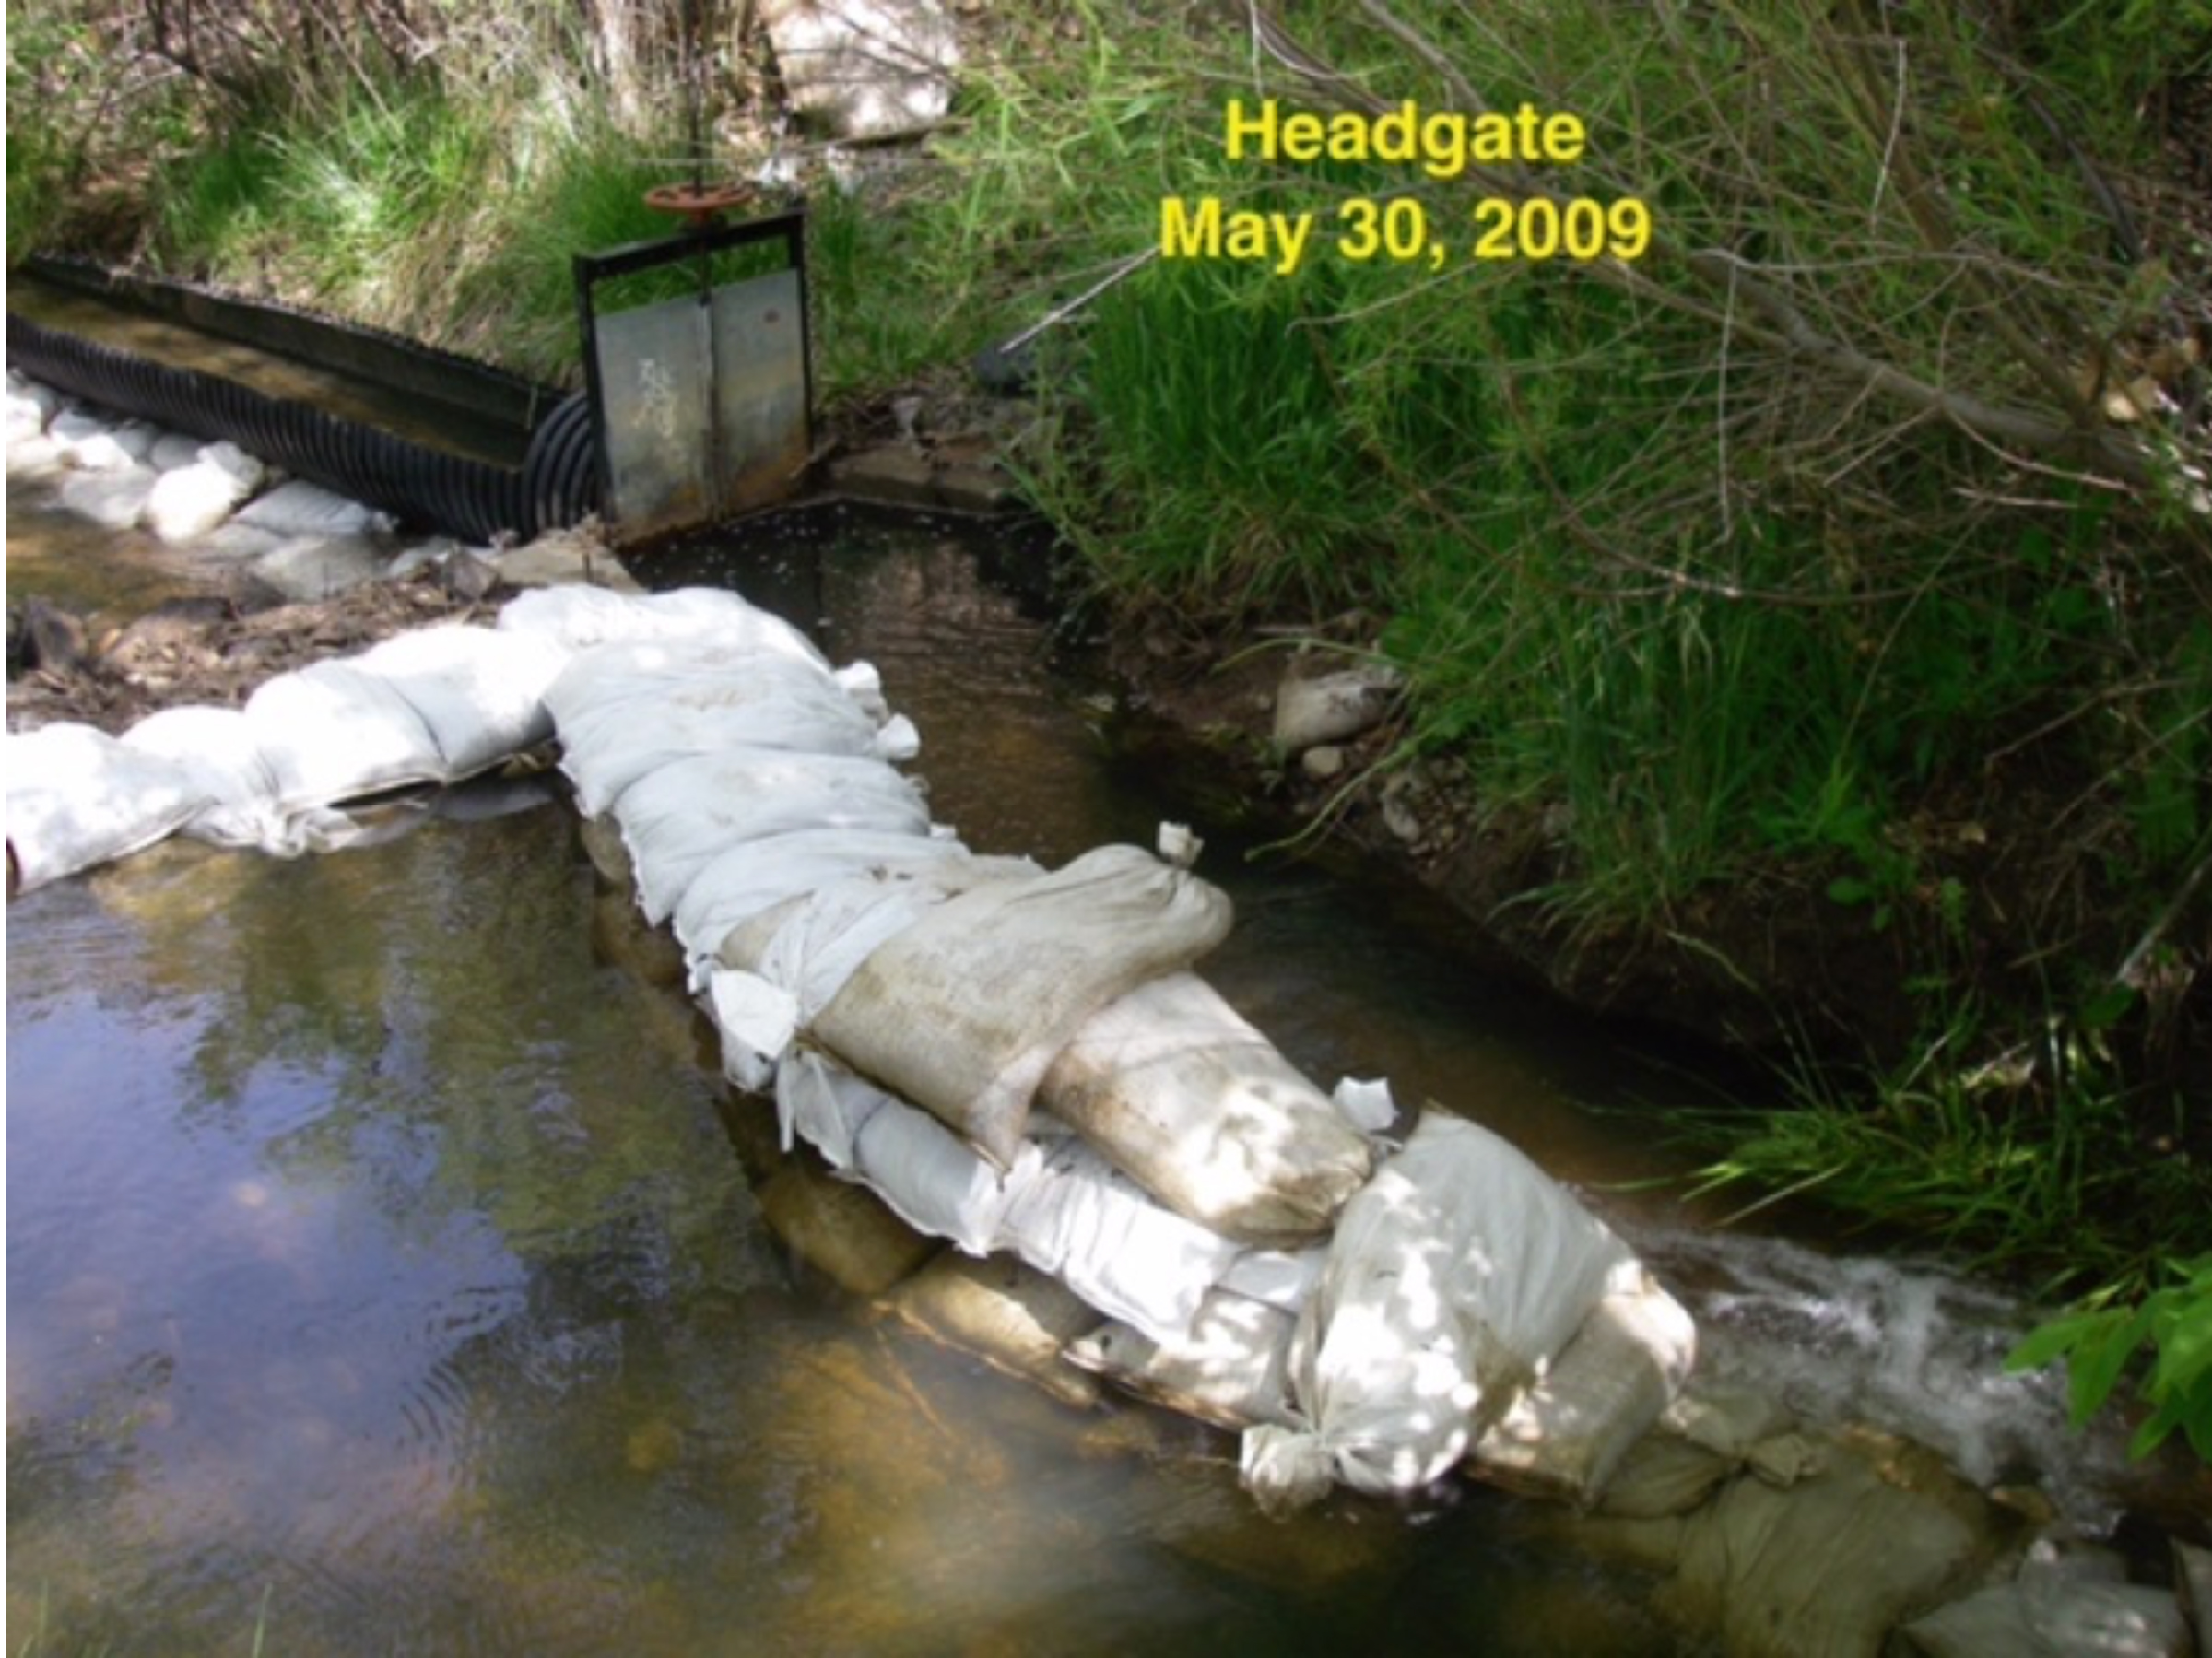 The diversion structure for the Acequia de la Muralla, showing the Santa Fe River in the front left, the sandbag wall, the headgate, and the opened culvert that is the beginning of the ditch. photo by B.C. Rimbeaux